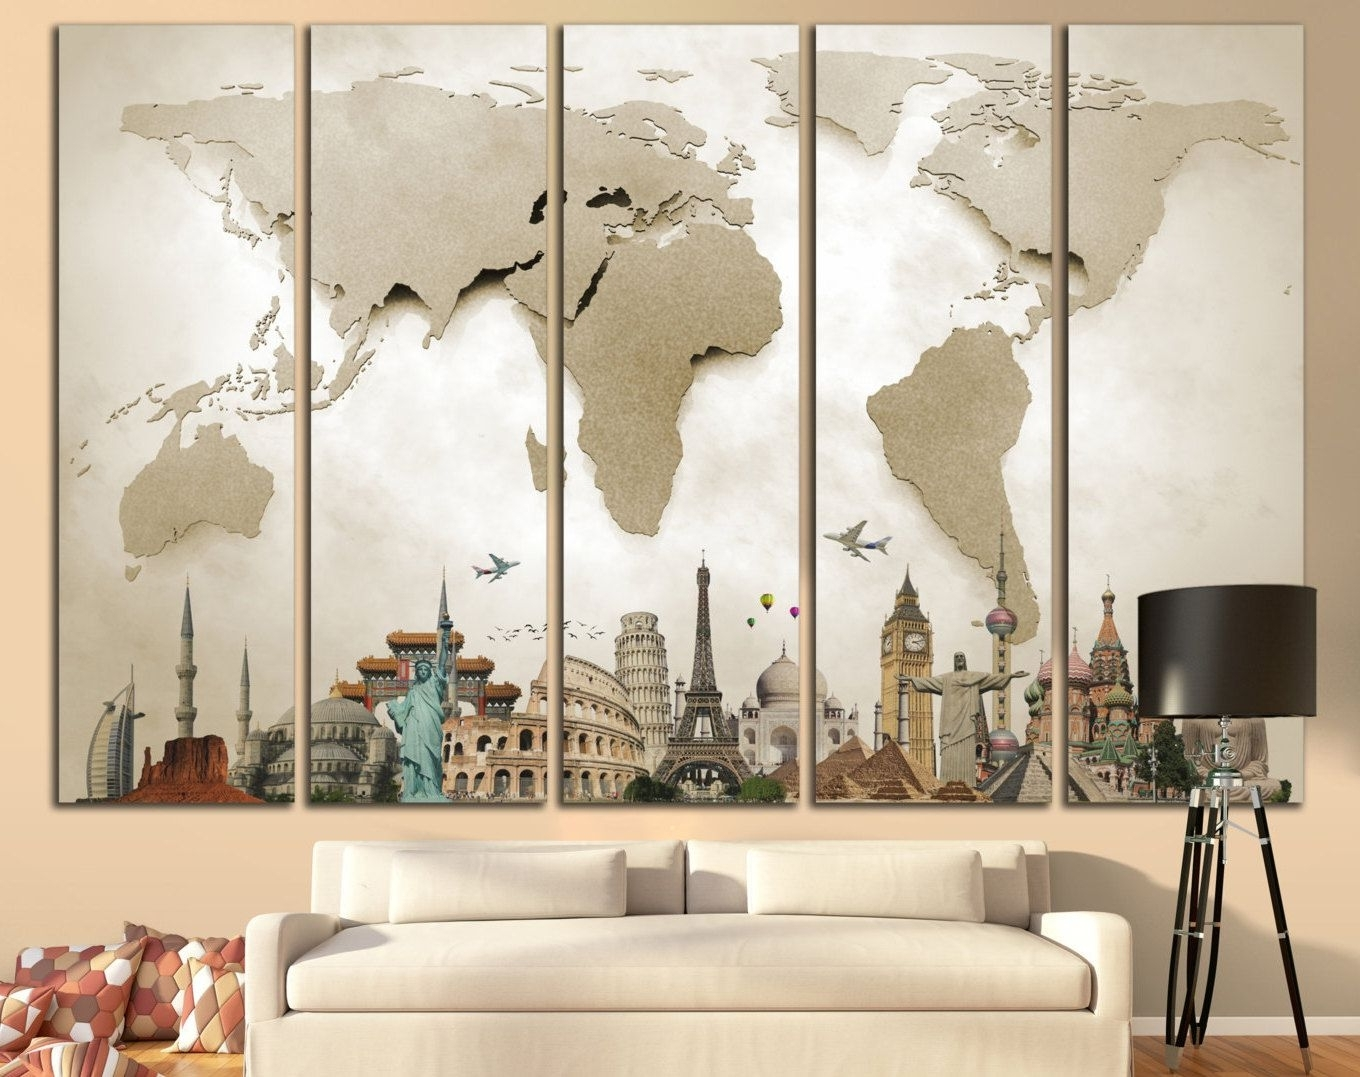 Map Of The World Wall Art Regarding Fashionable Map Of World Wall Art (View 8 of 20)